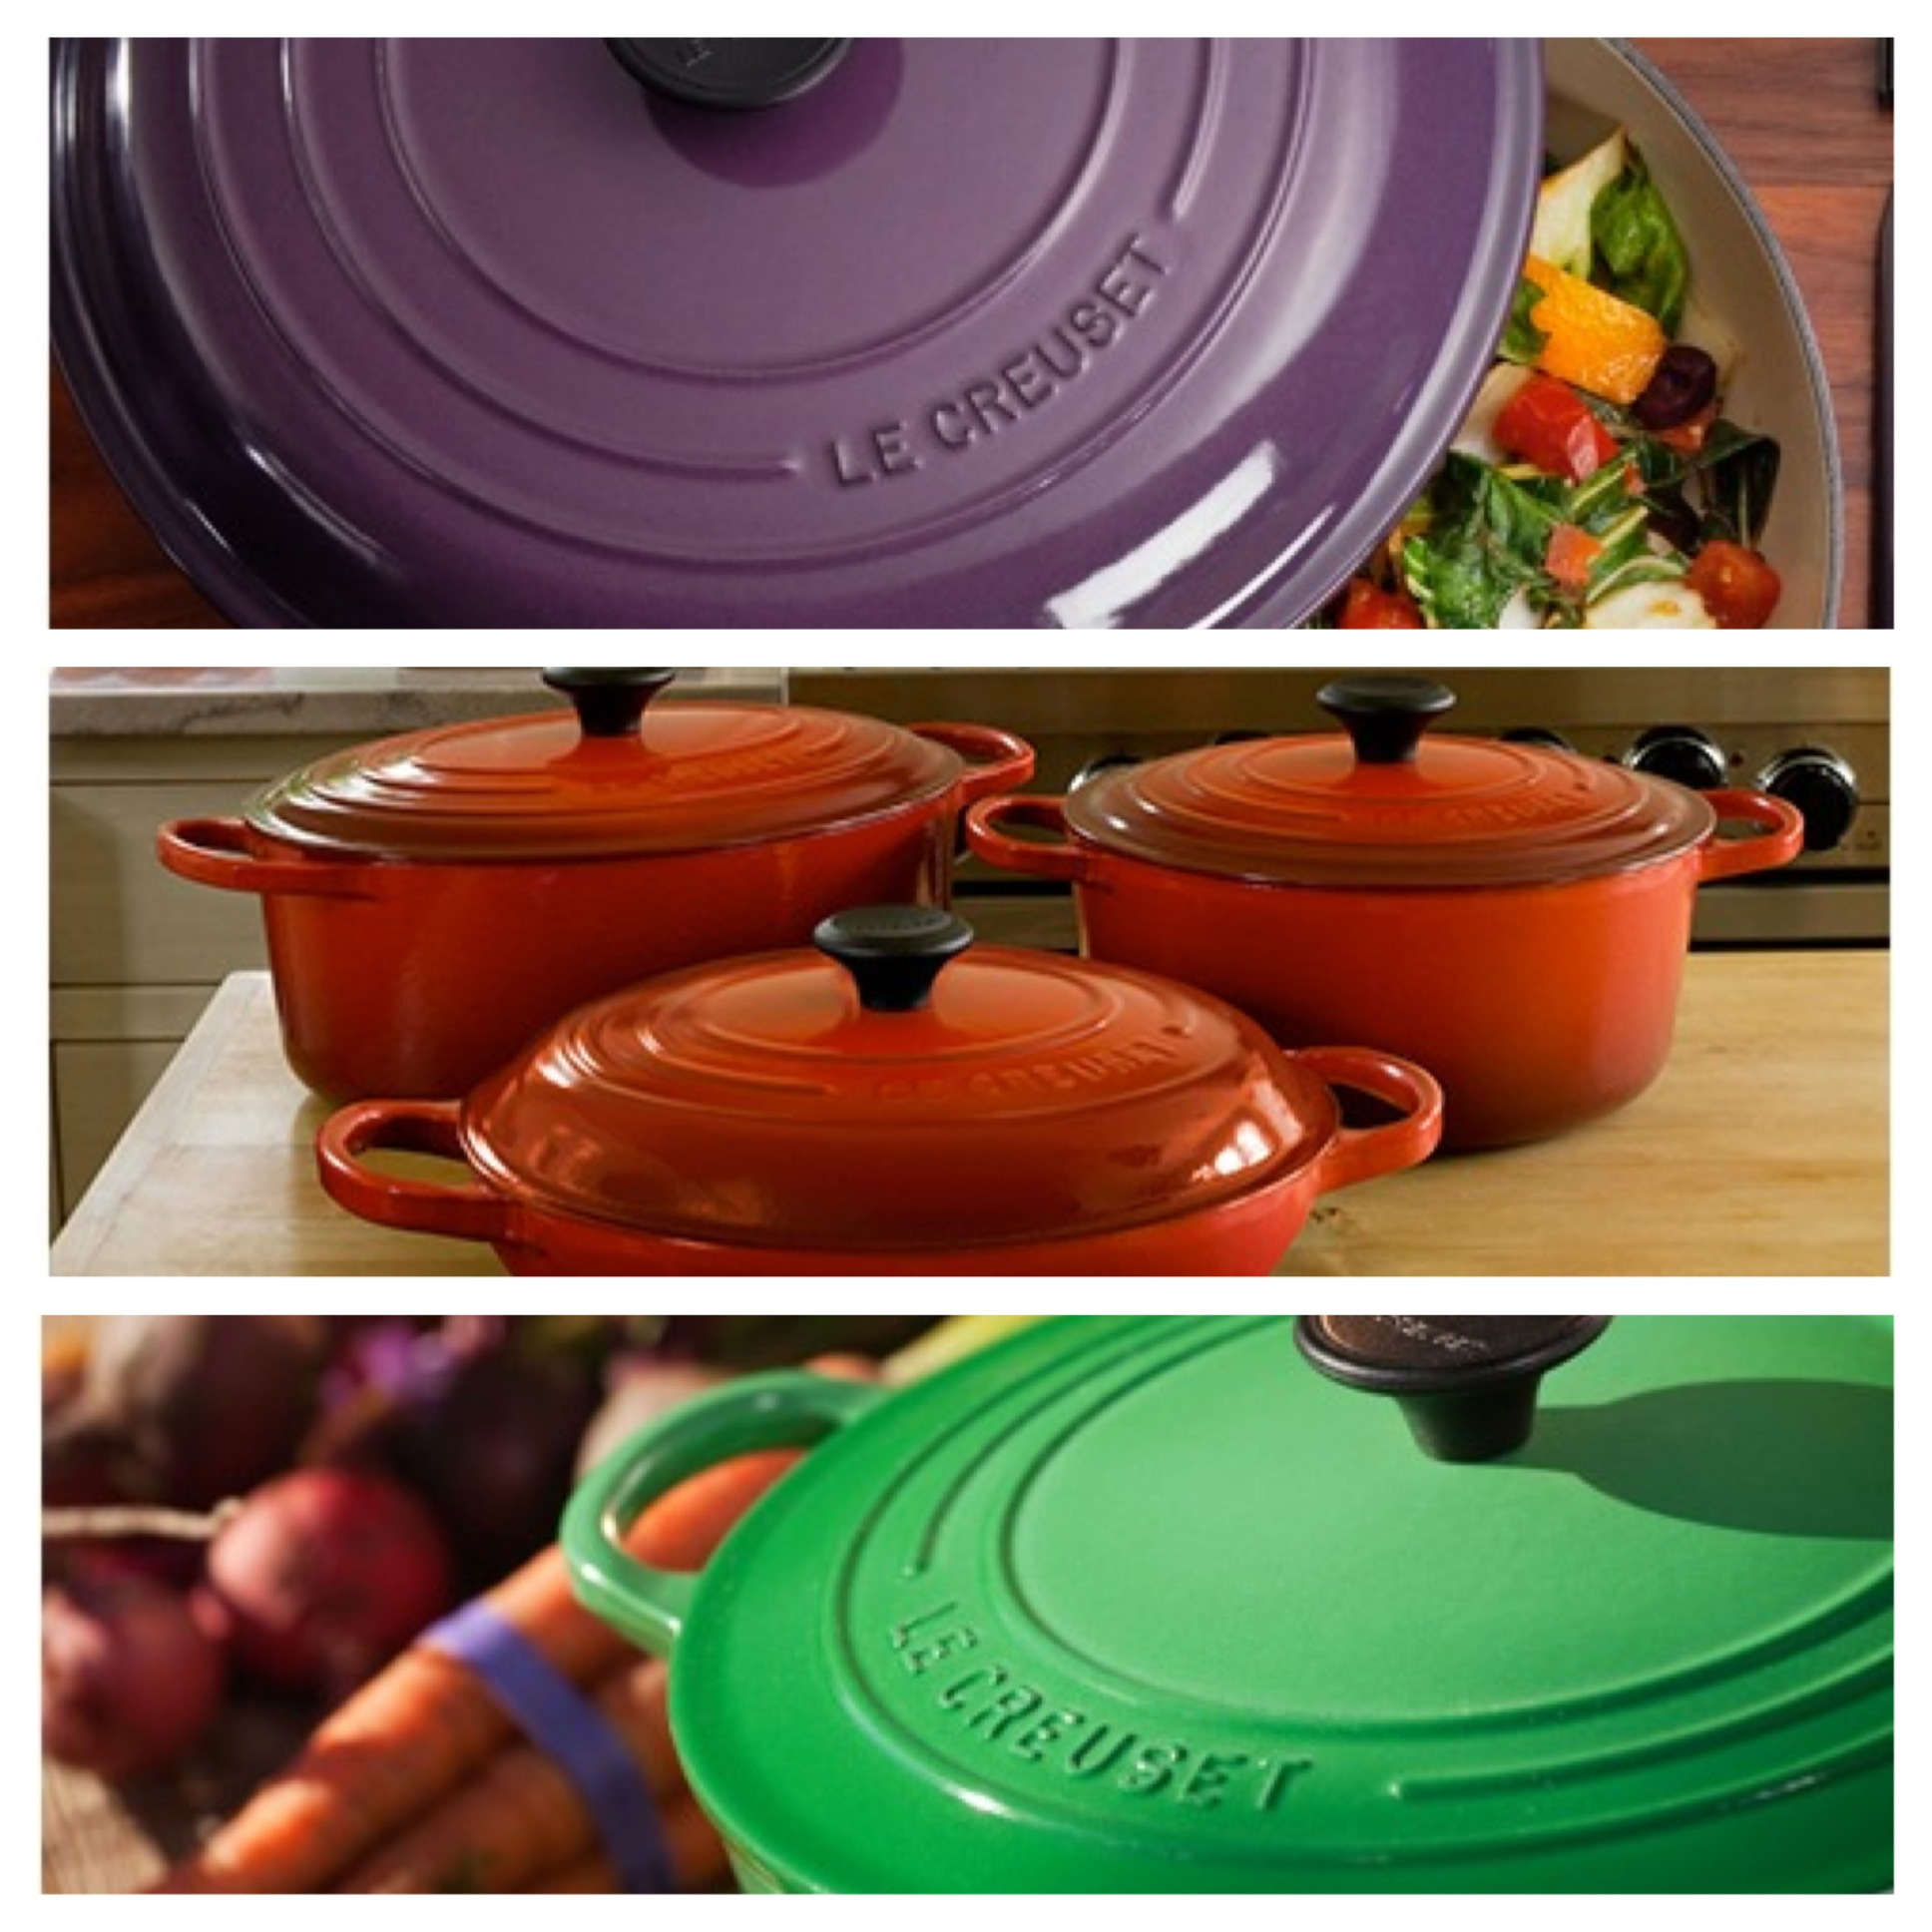 Le Creuset In Castle Rock Goes Eclectic Eclectic Entertaining